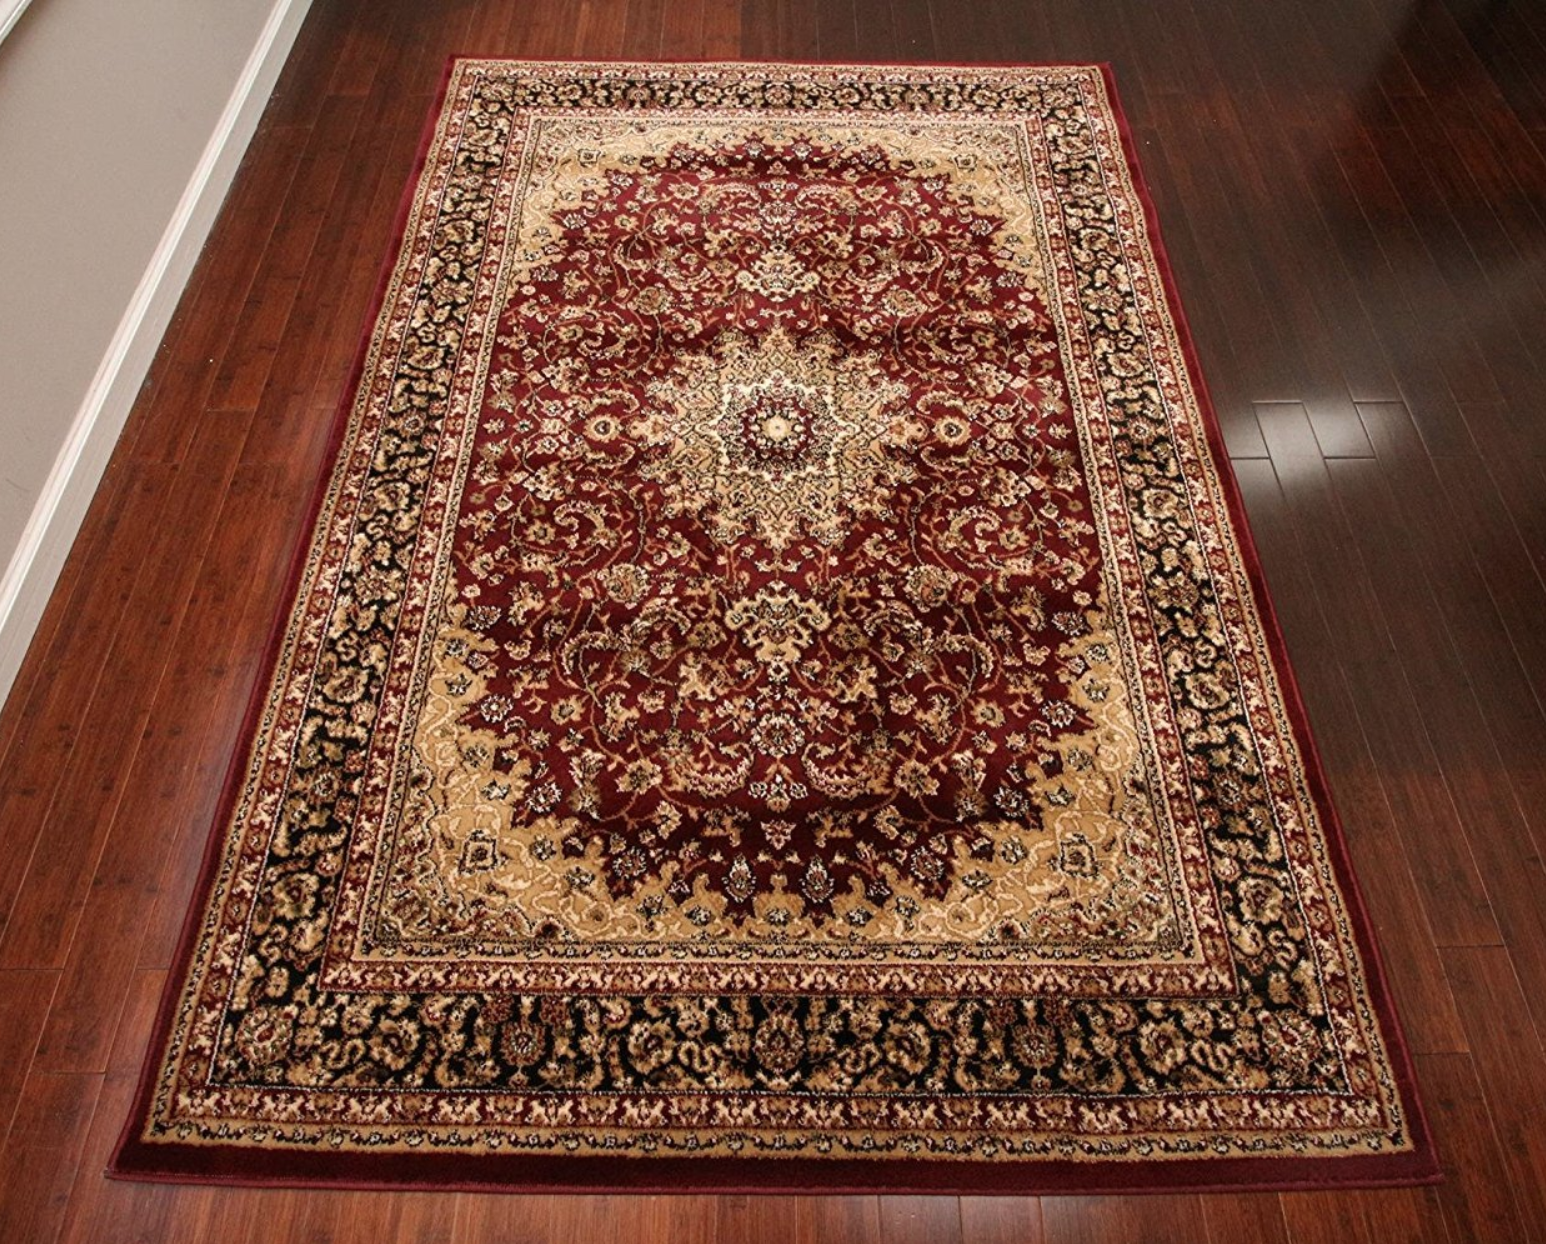 Feraghan Burgundy Red Traditional Isfahan Wool Persian Area Rugs Rug 4018 Rugs On Carpet Diy Carpet Rugs